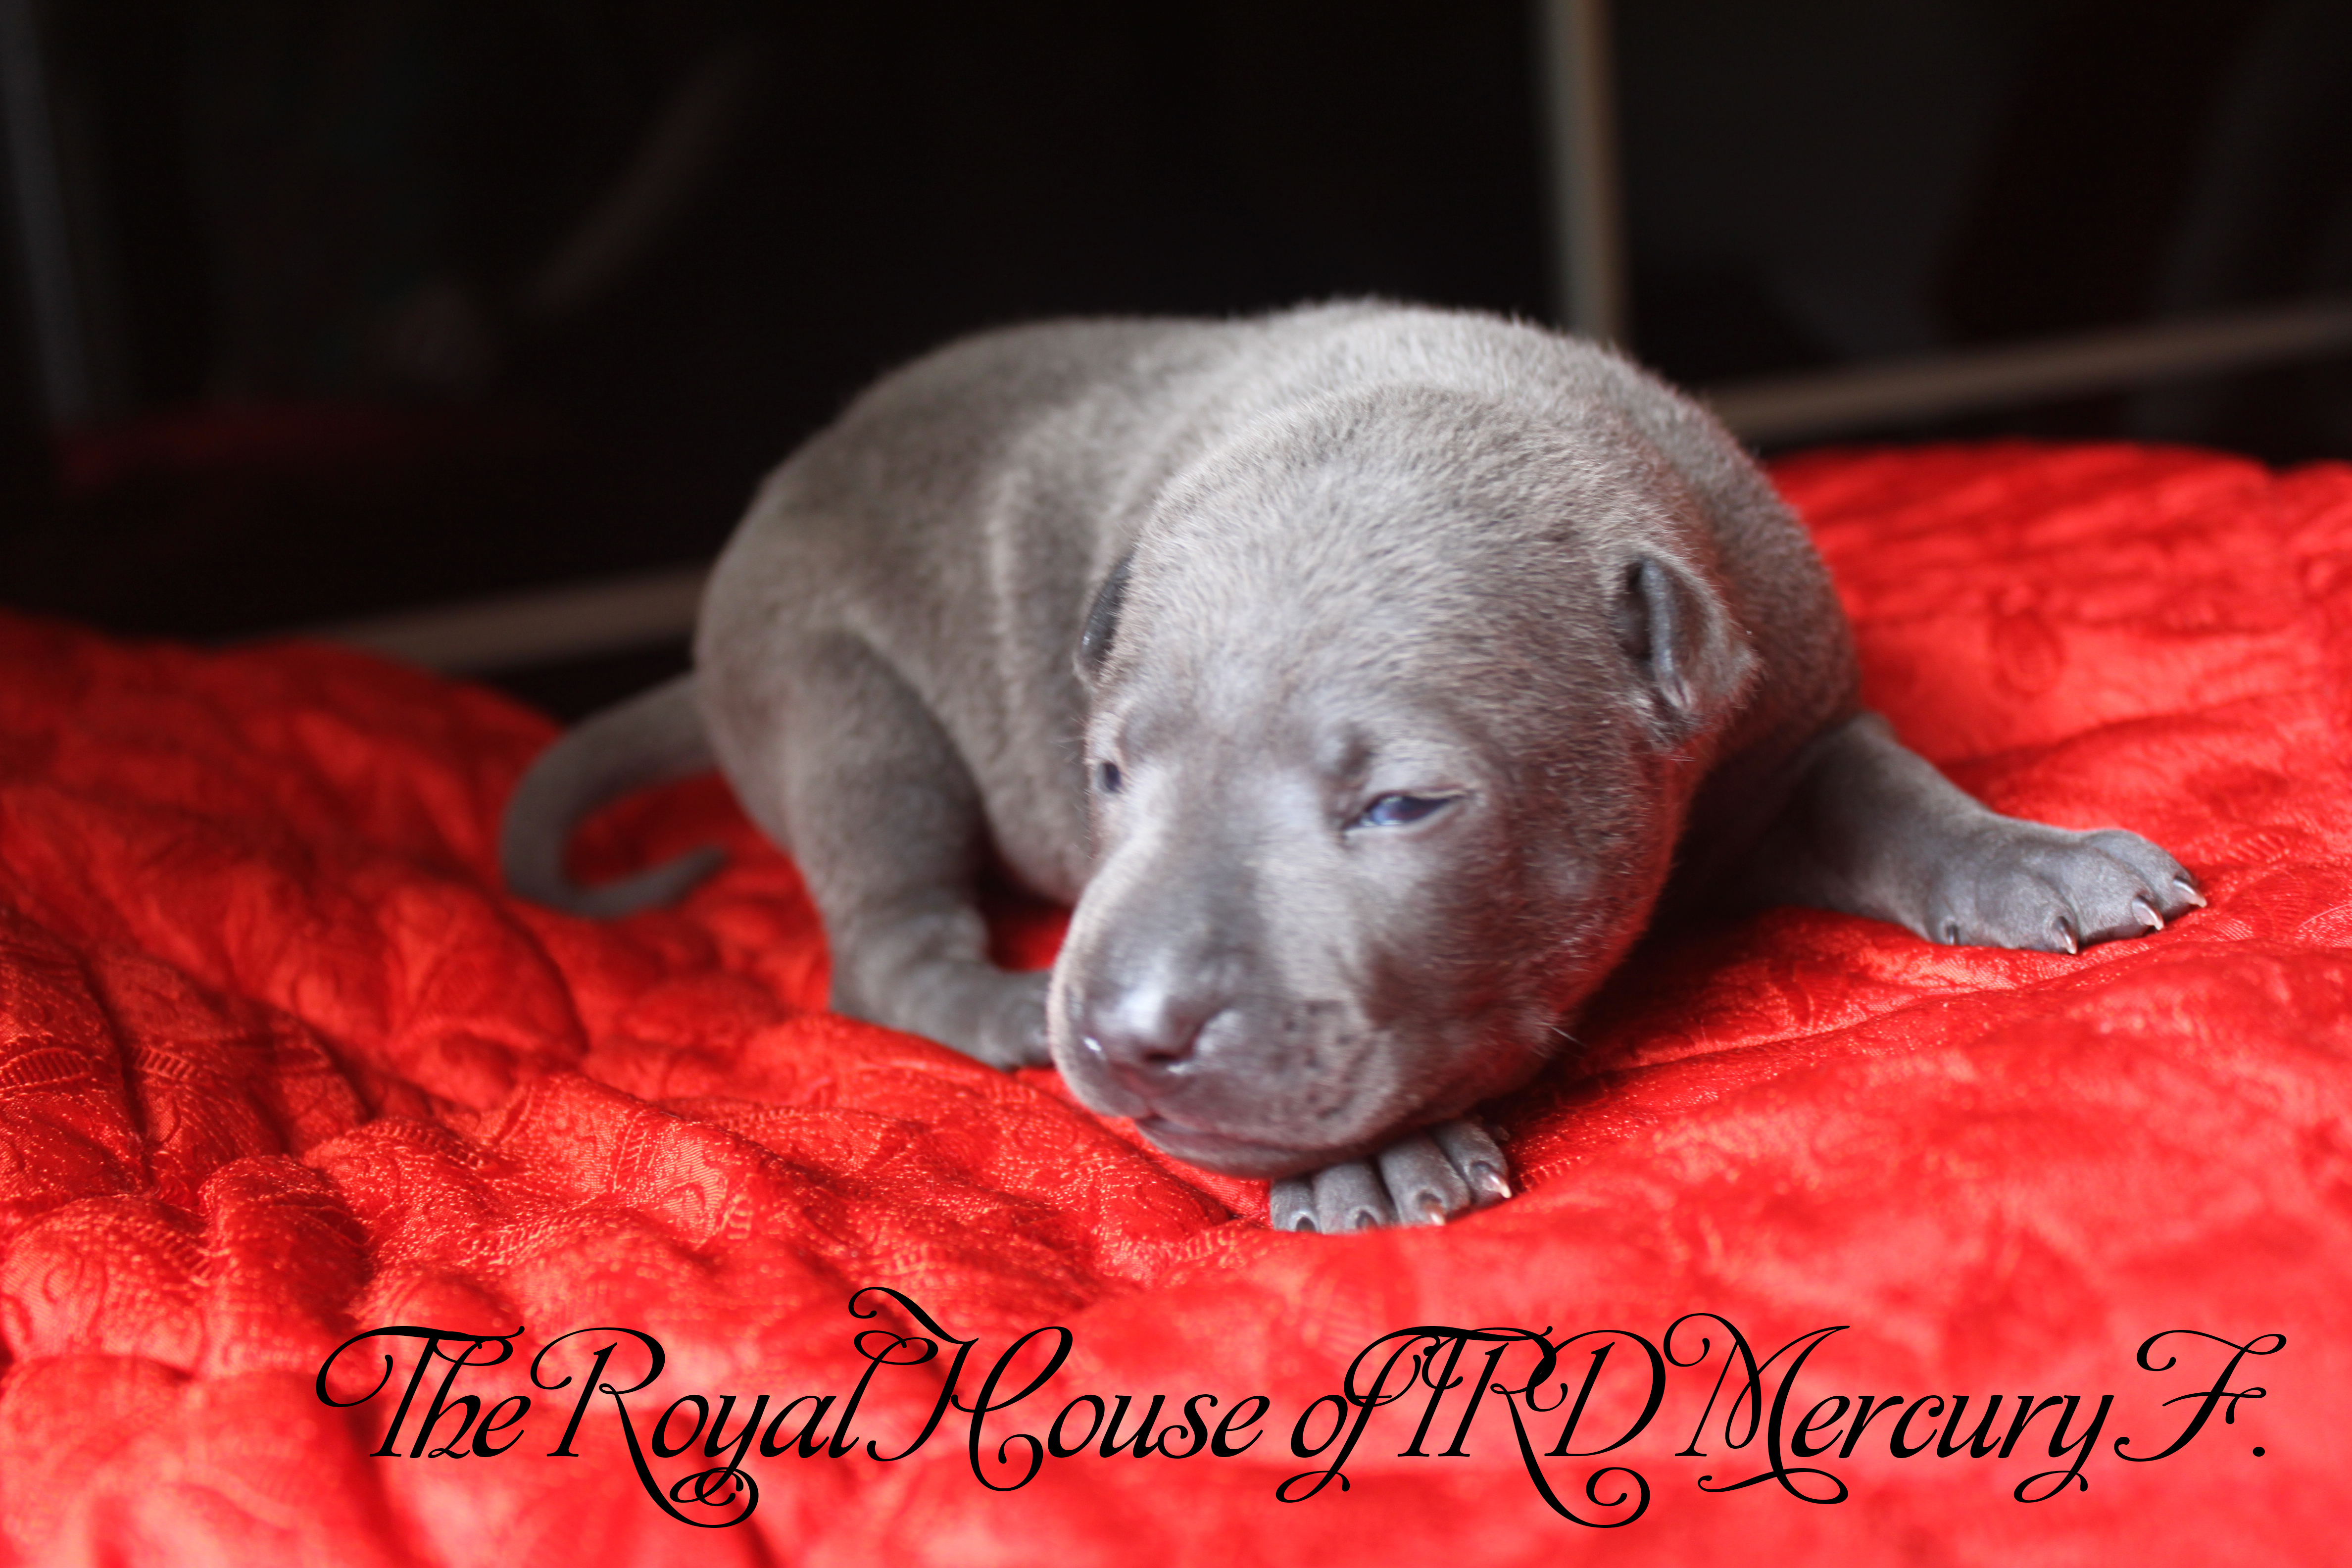 The Royal House of TRD Mercury F.